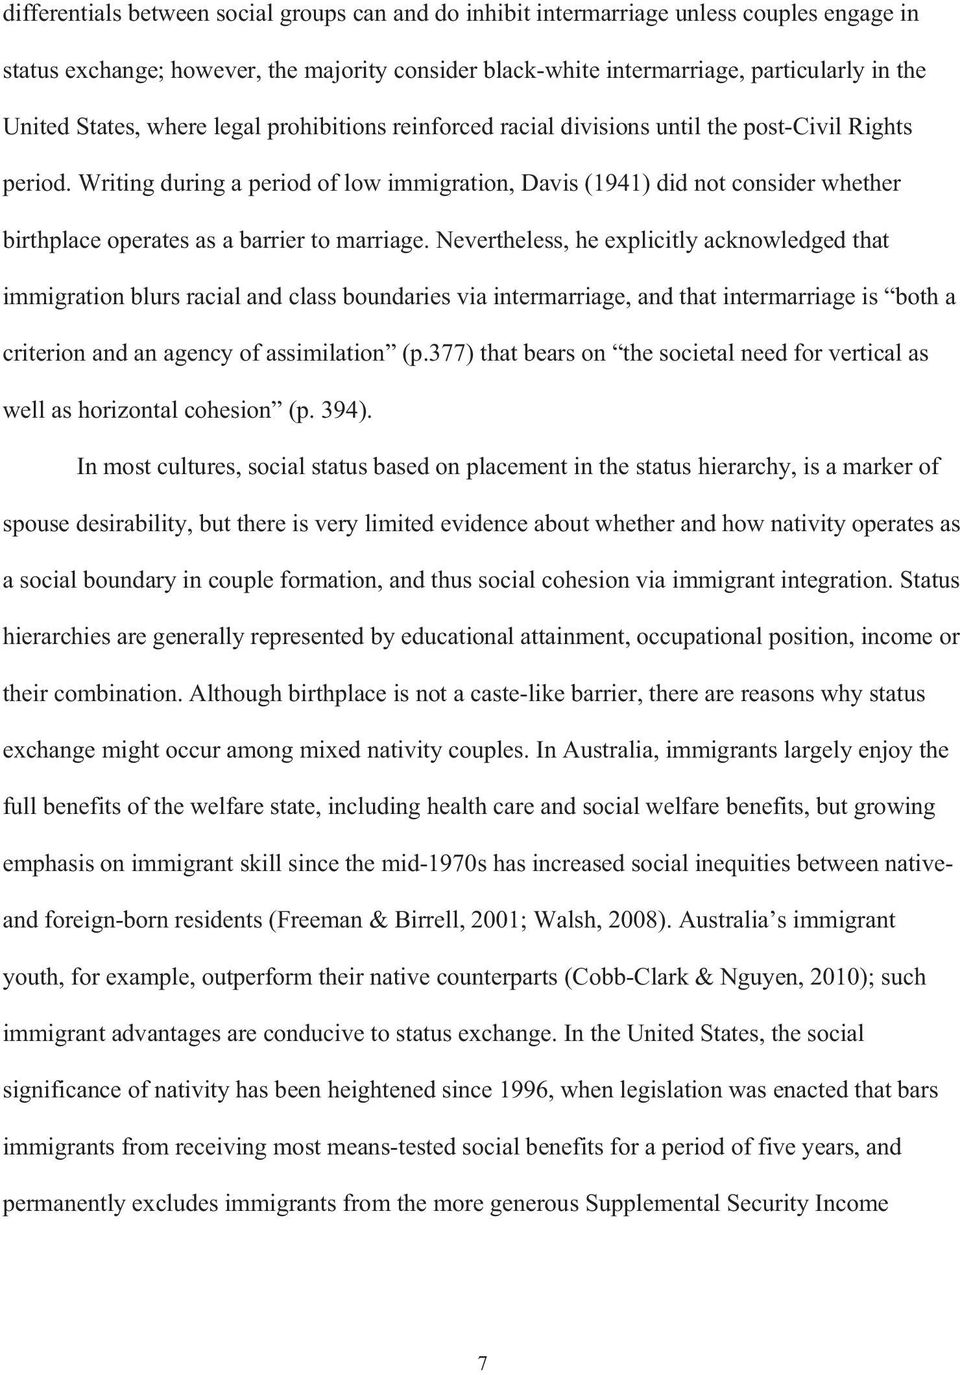 Writing during a period of low immigration, Davis (1941) did not consider whether birthplace operates as a barrier to marriage.